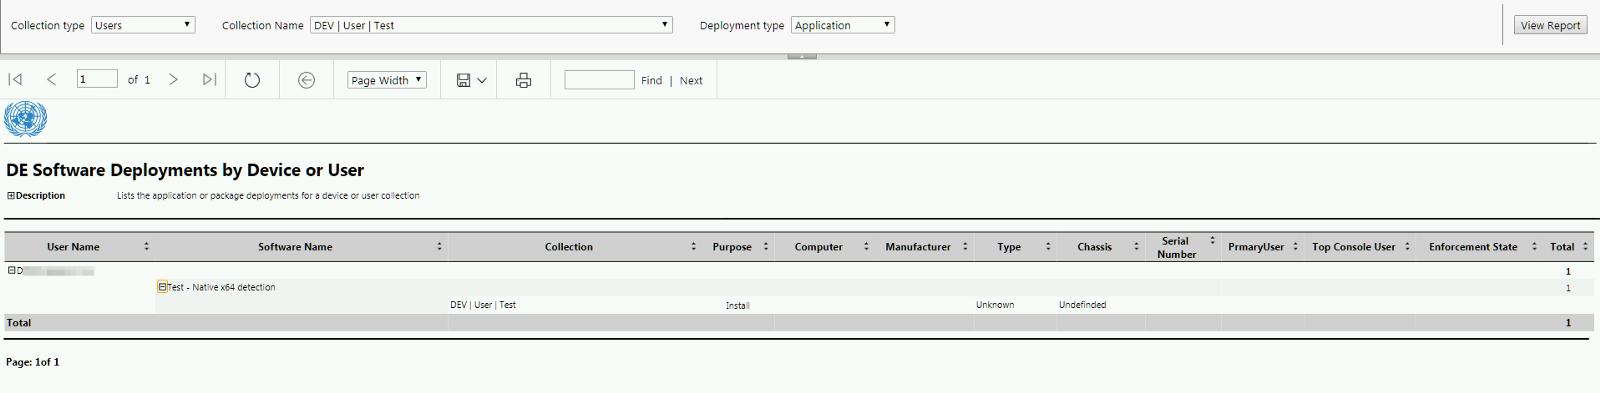 Application and Package Deployments Reporting by Collection